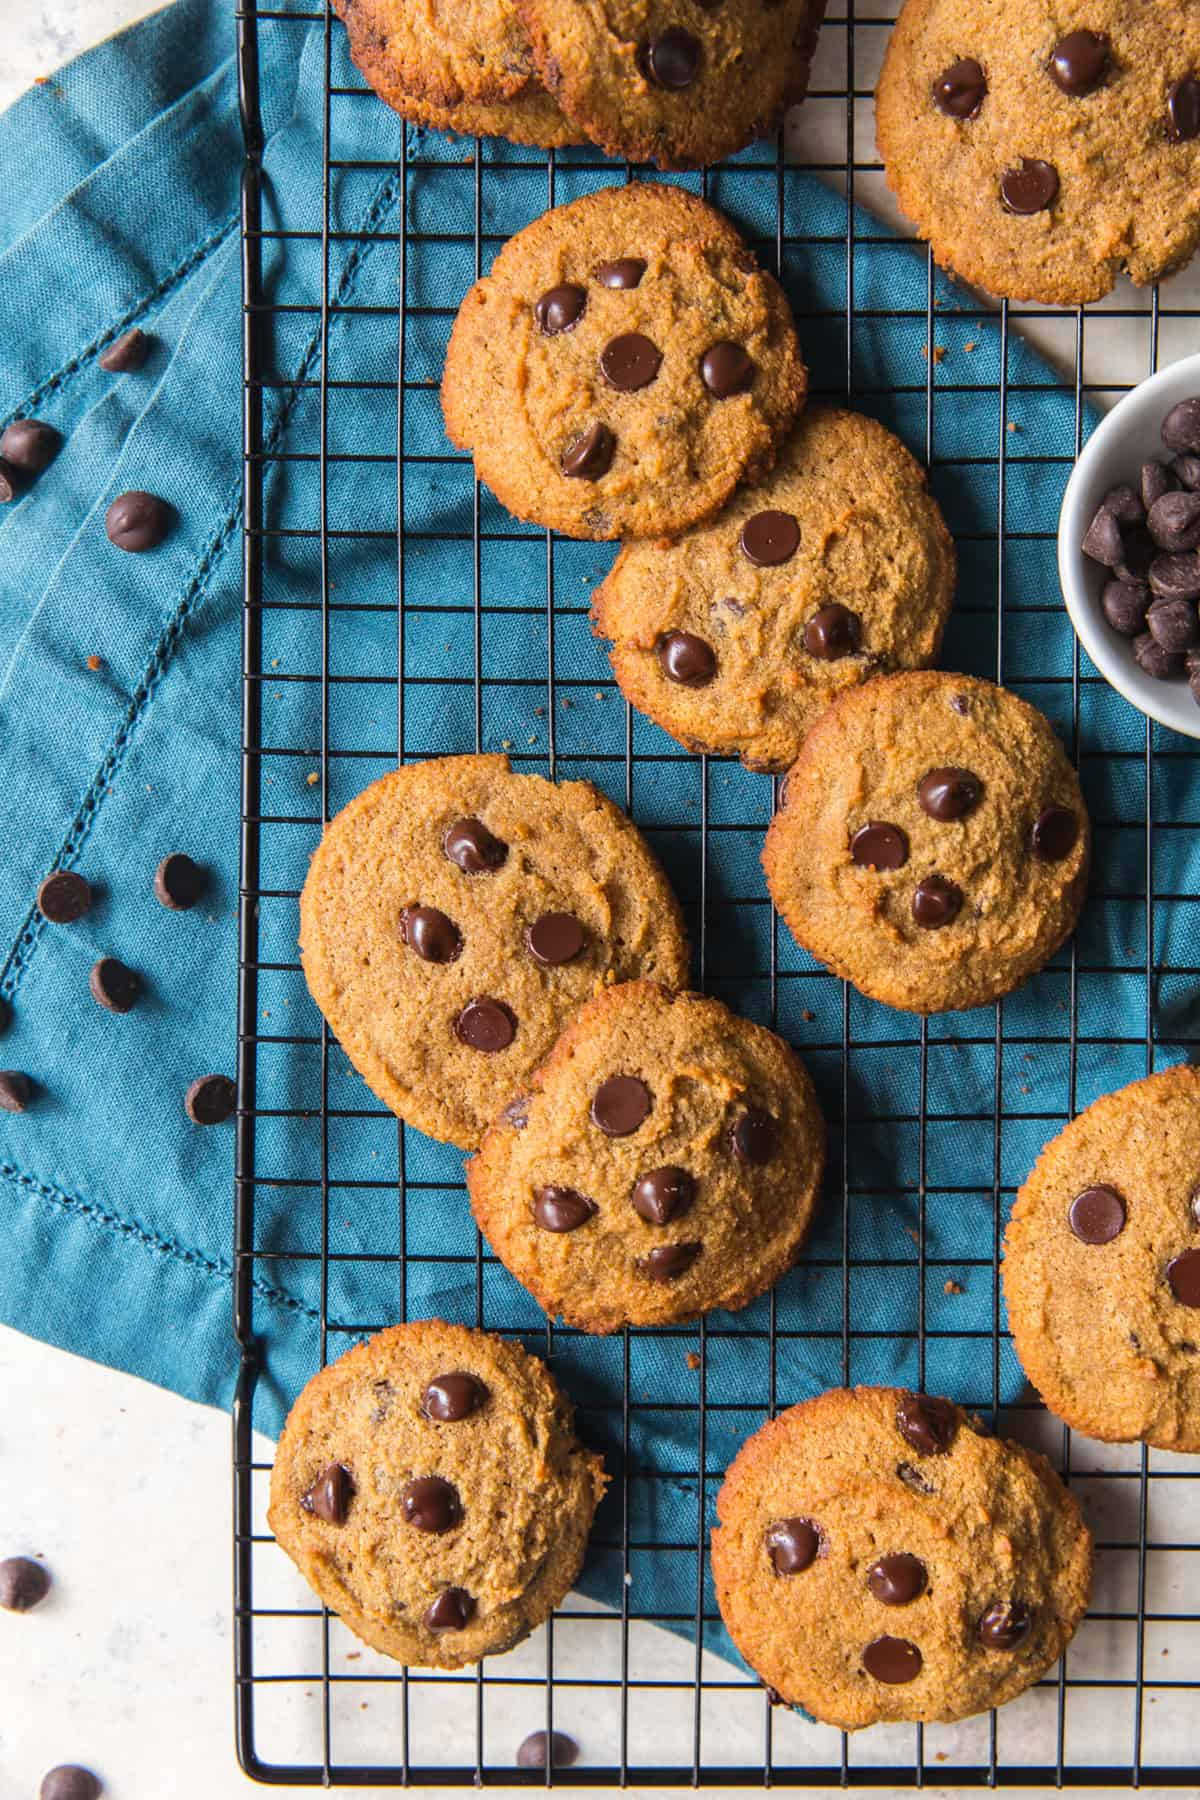 paleo chocolate chip cookies on a wire rack with a blue cloth